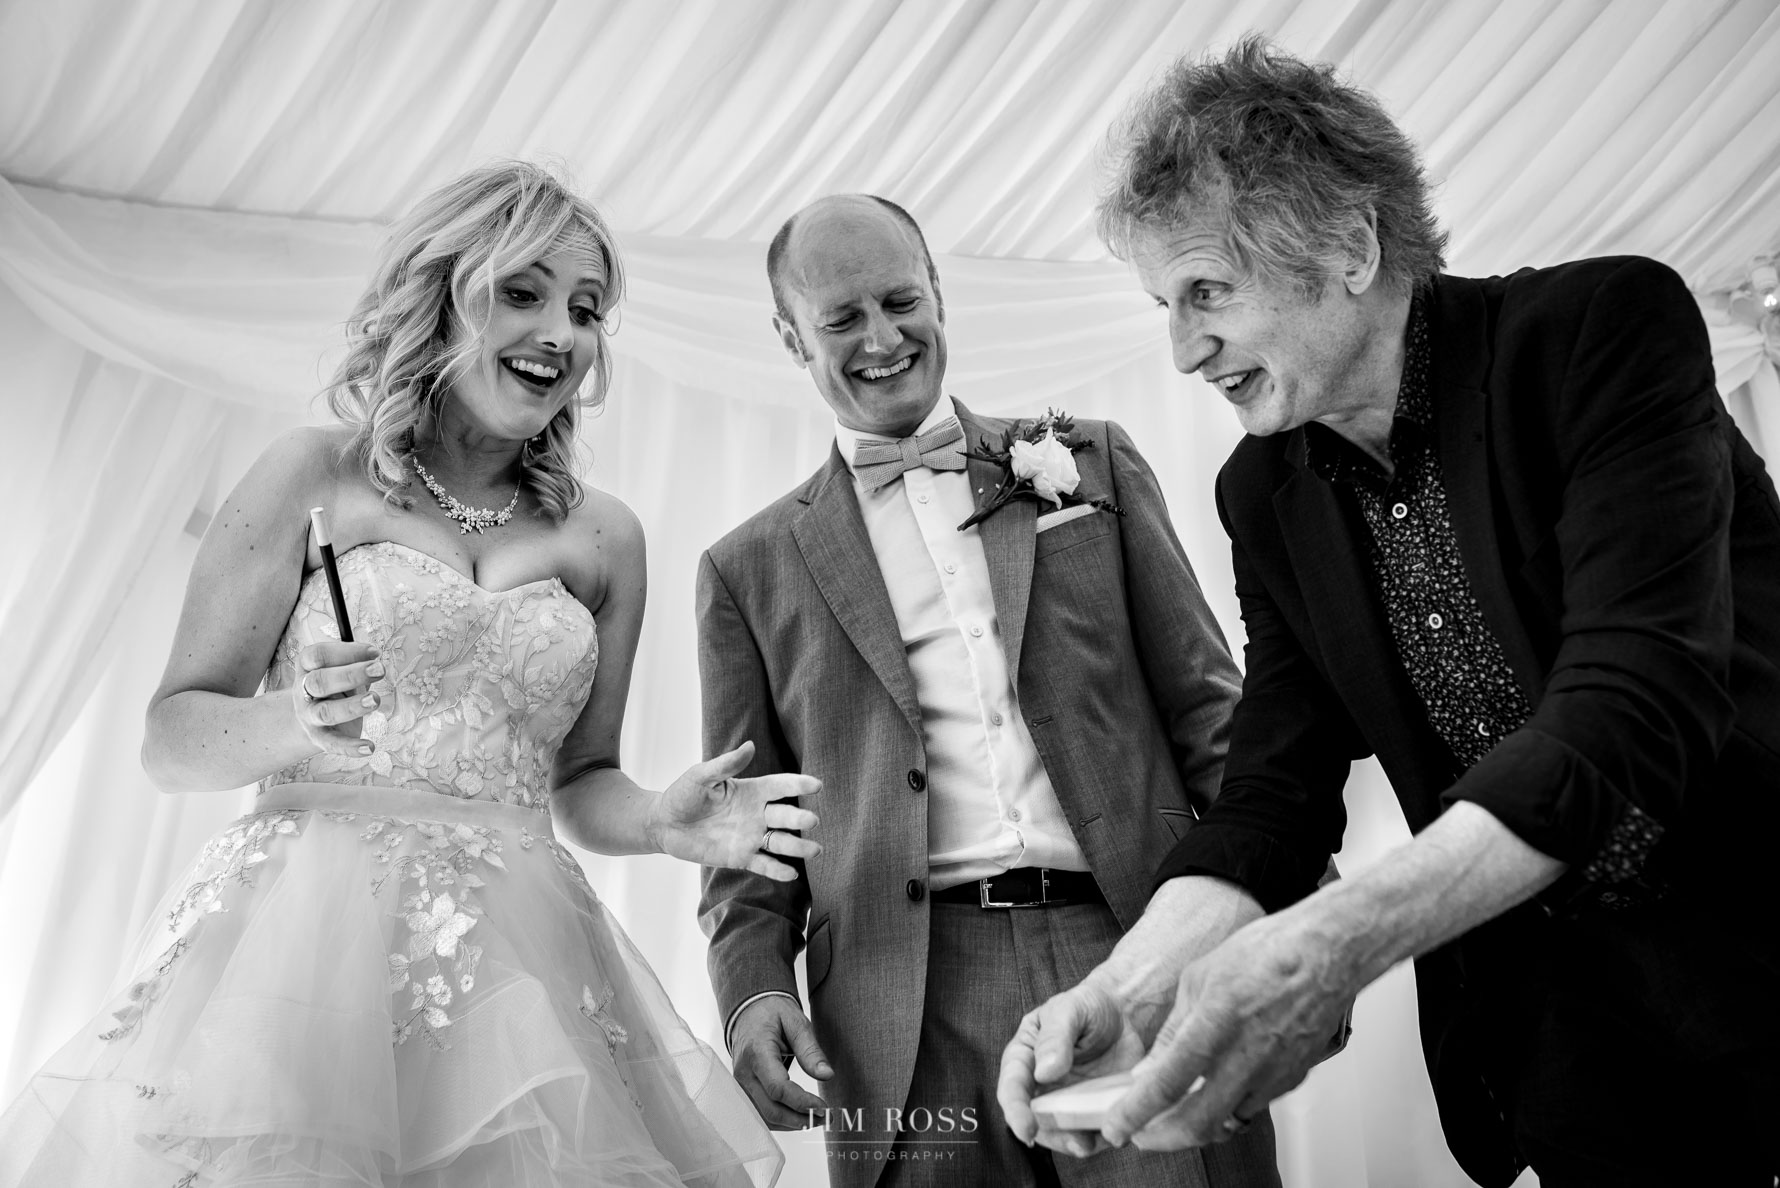 Magician wows newlyweds